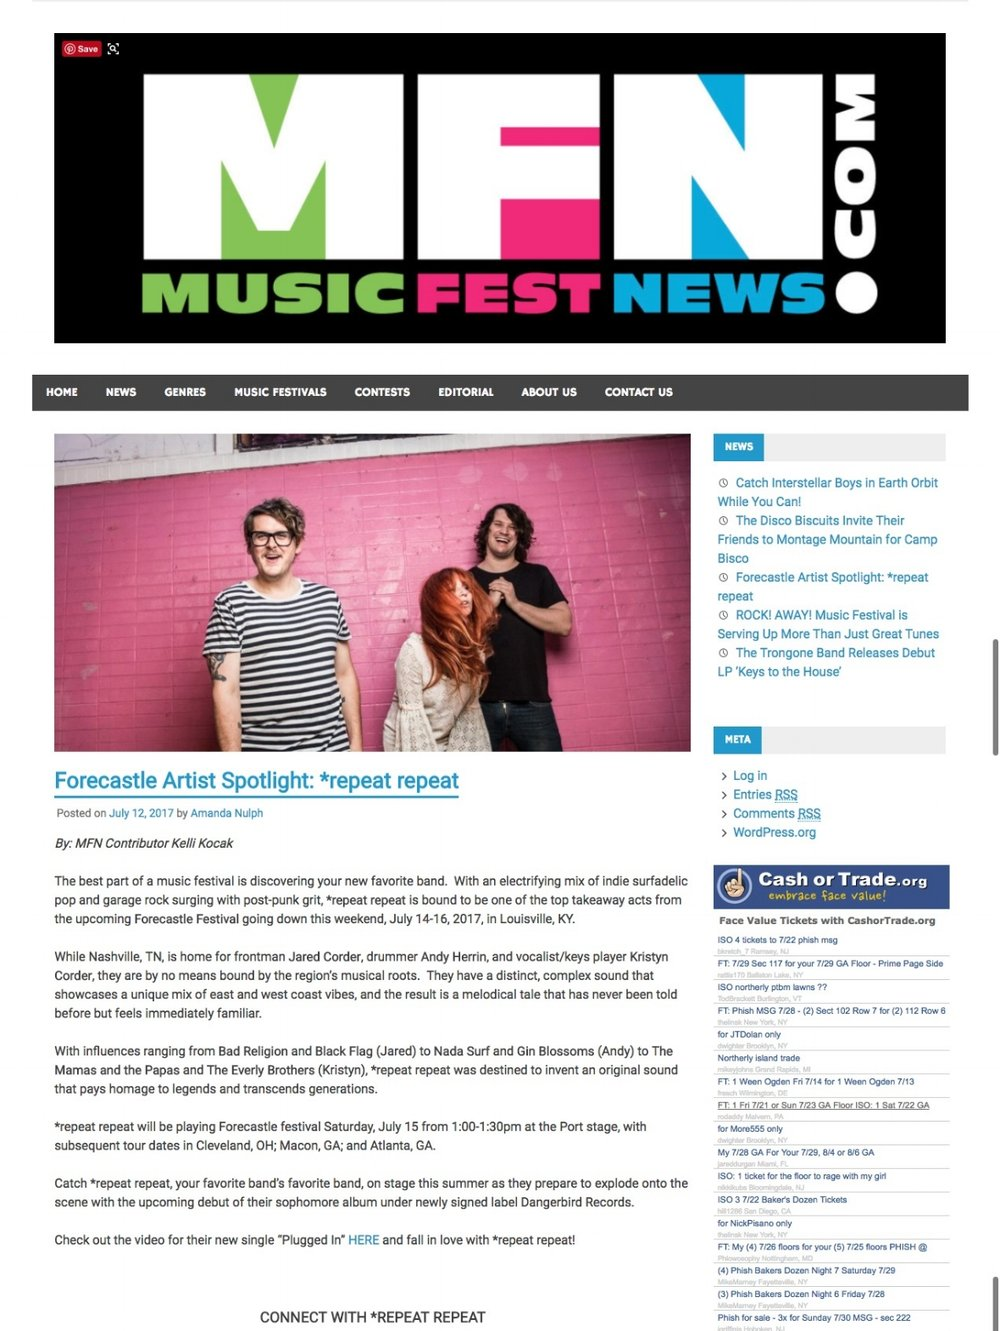 Forecastle Artist Spotlight   repeat repeat – MUSICFESTNEWS.jpg